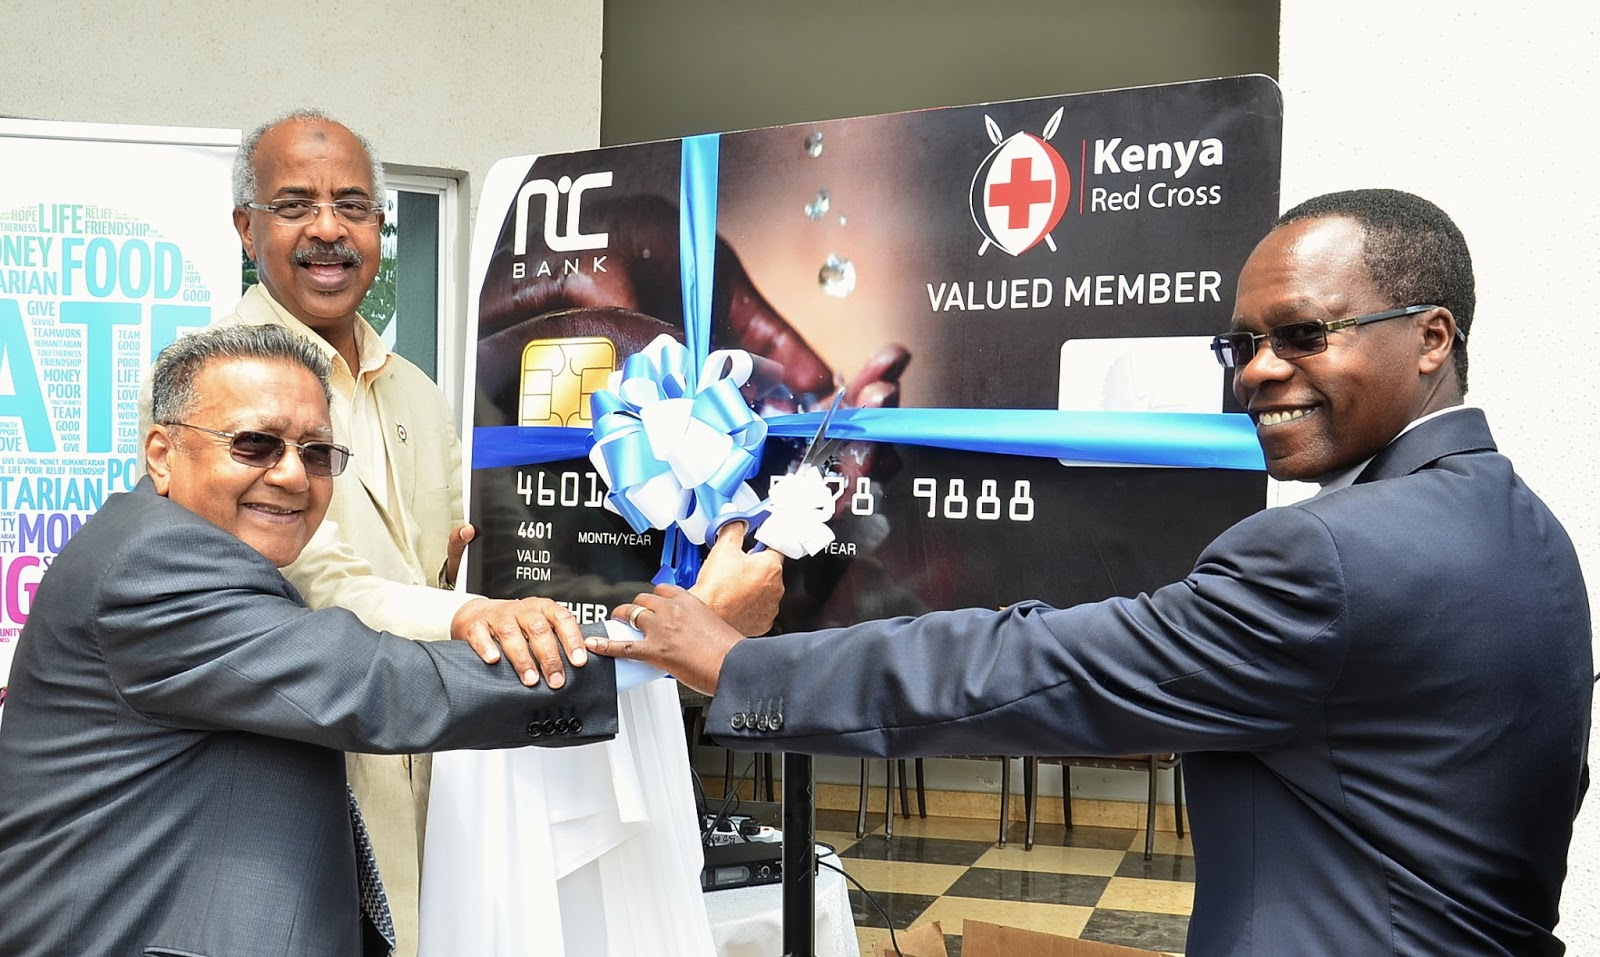 NIC Bank and Kenya Red Cross launches a co-branded credit